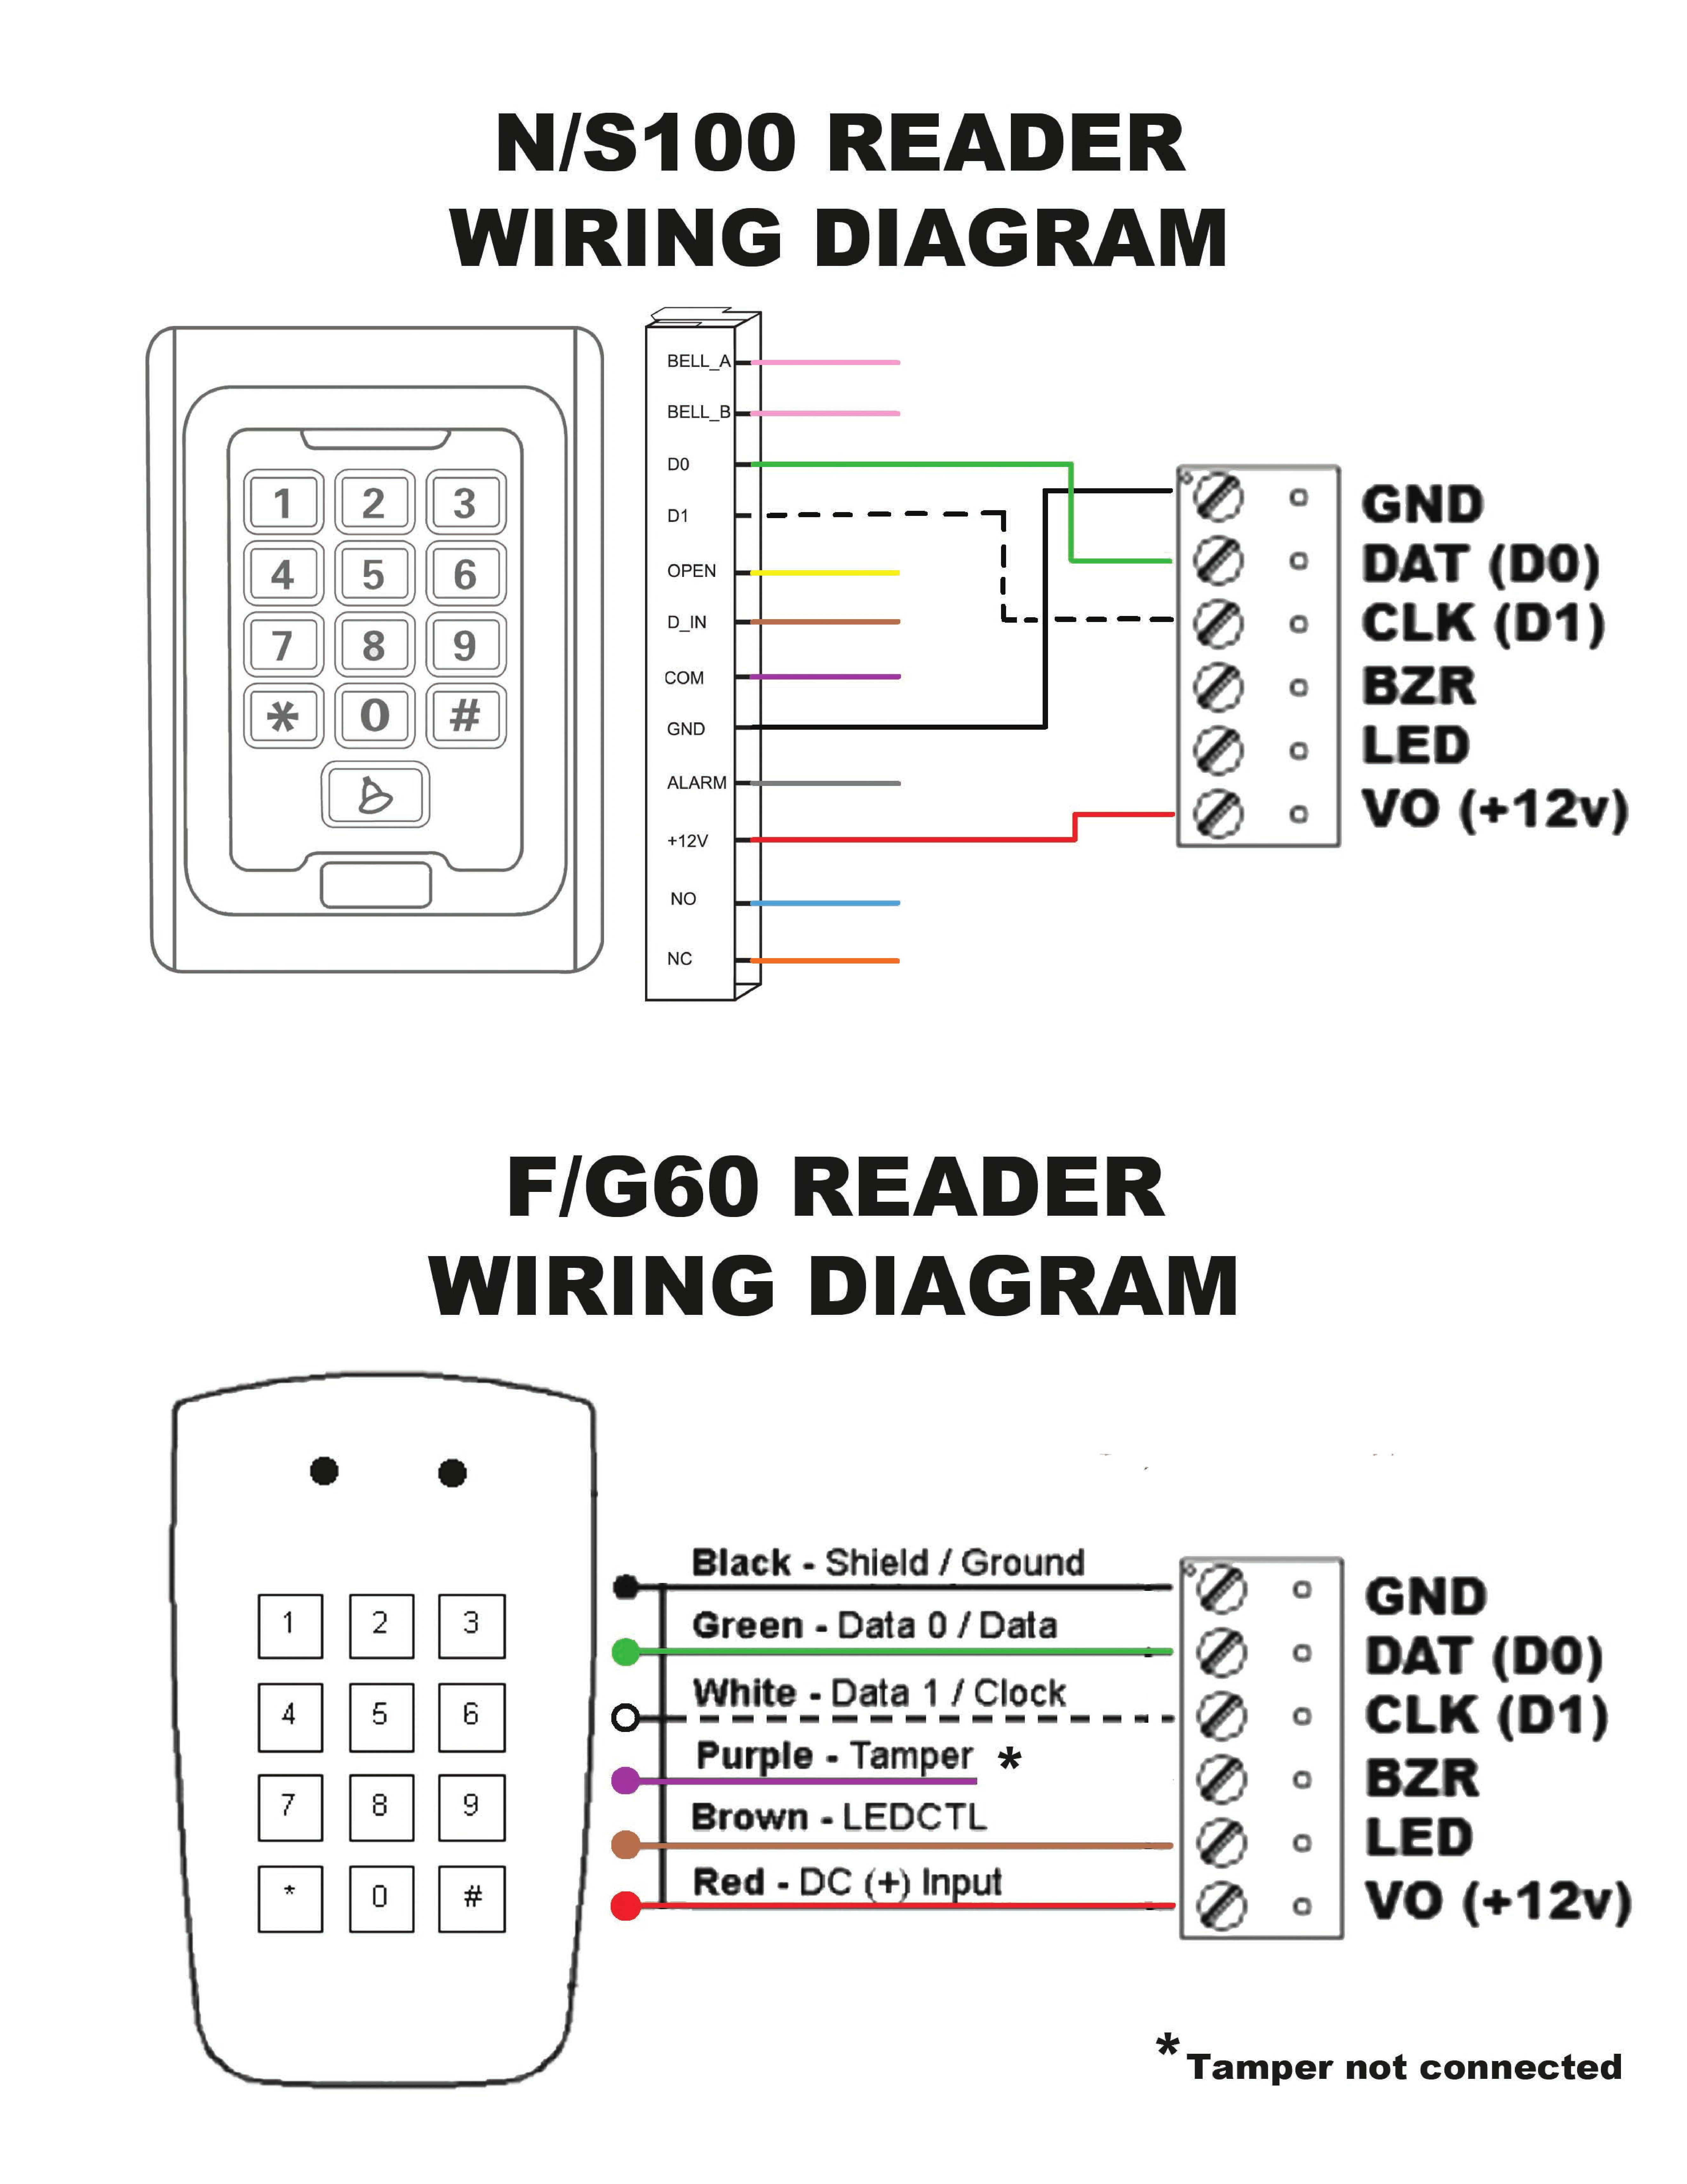 ls f60 g60 and ls n100 s100 readers wiring diagram u2013 remotelock mix s100 wiring